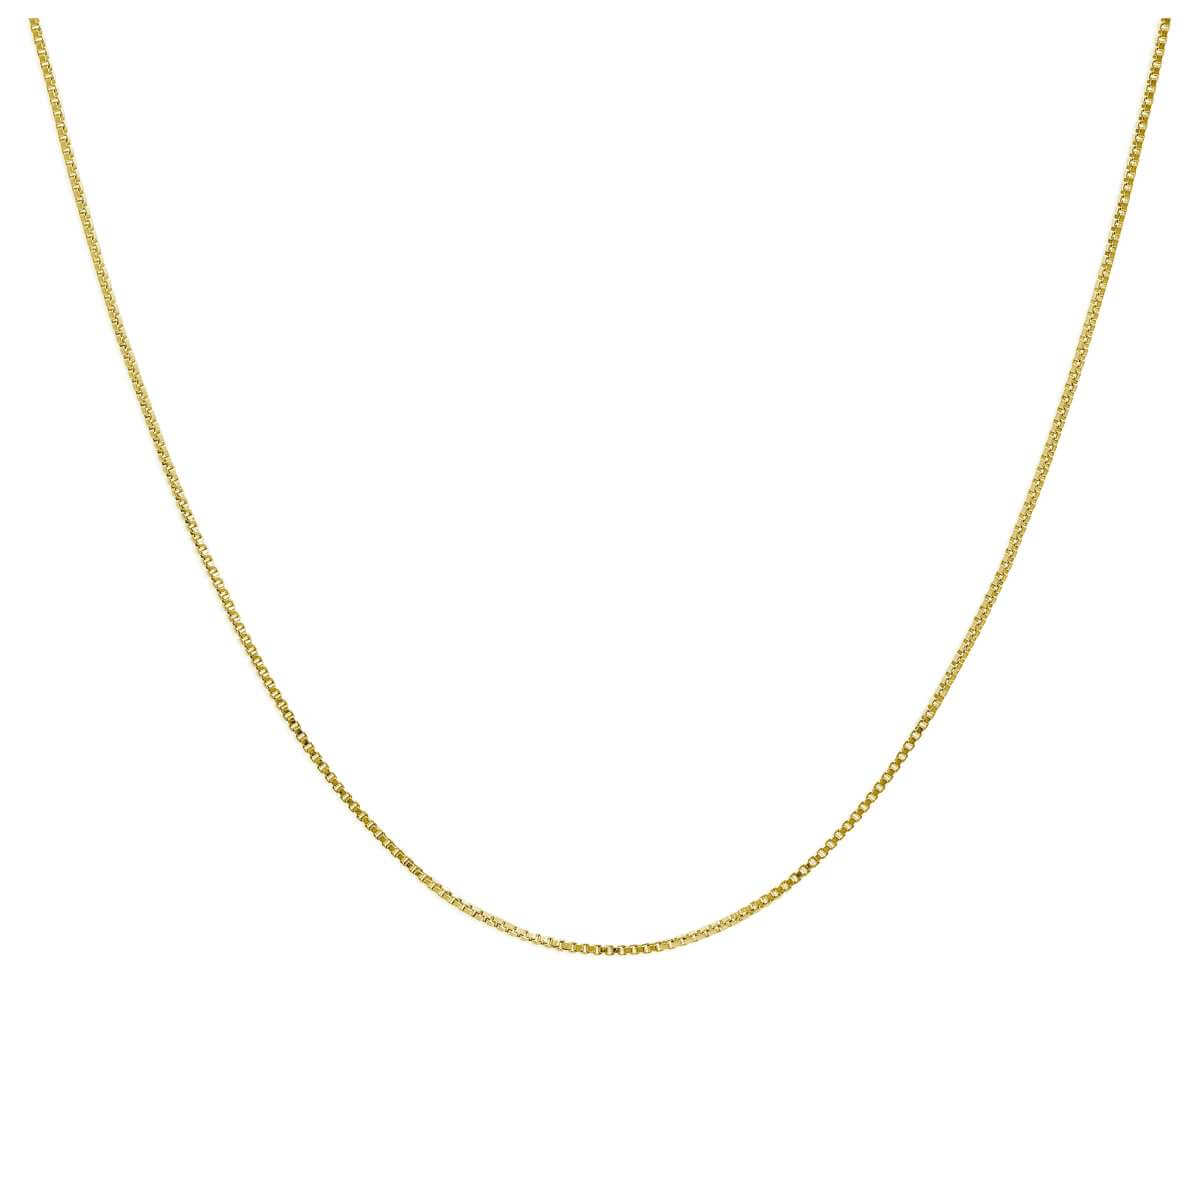 Gold Plated Sterling Silver Slider Clasp Box Chain up to 24 Inches